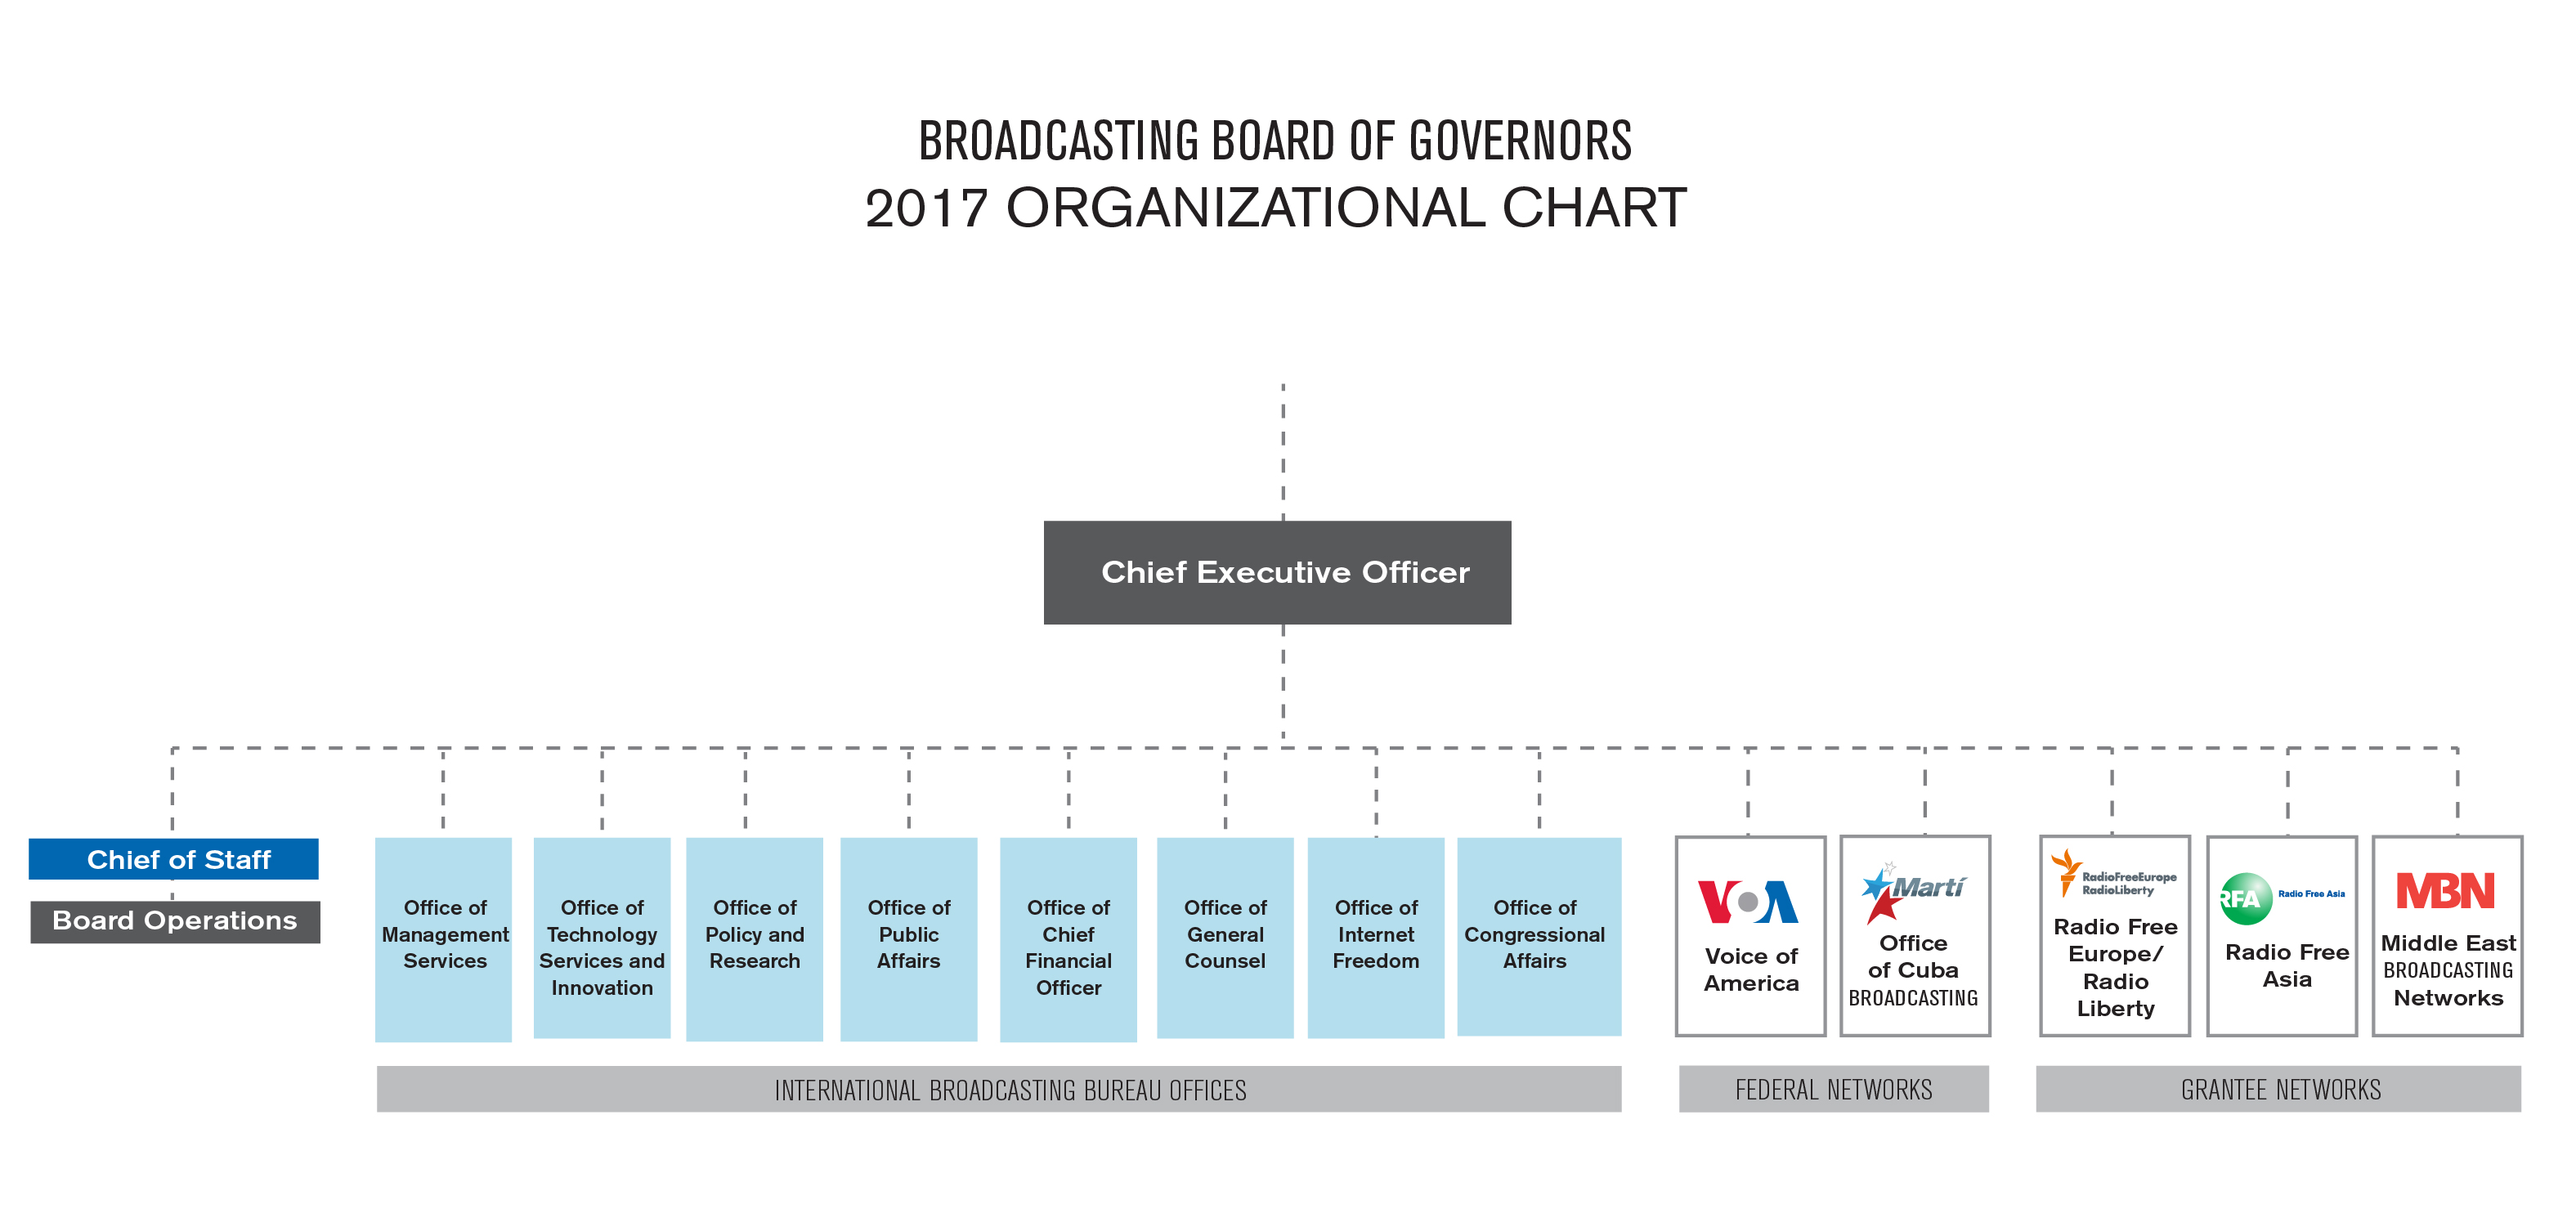 Organizational chart showing the structure of the BBG